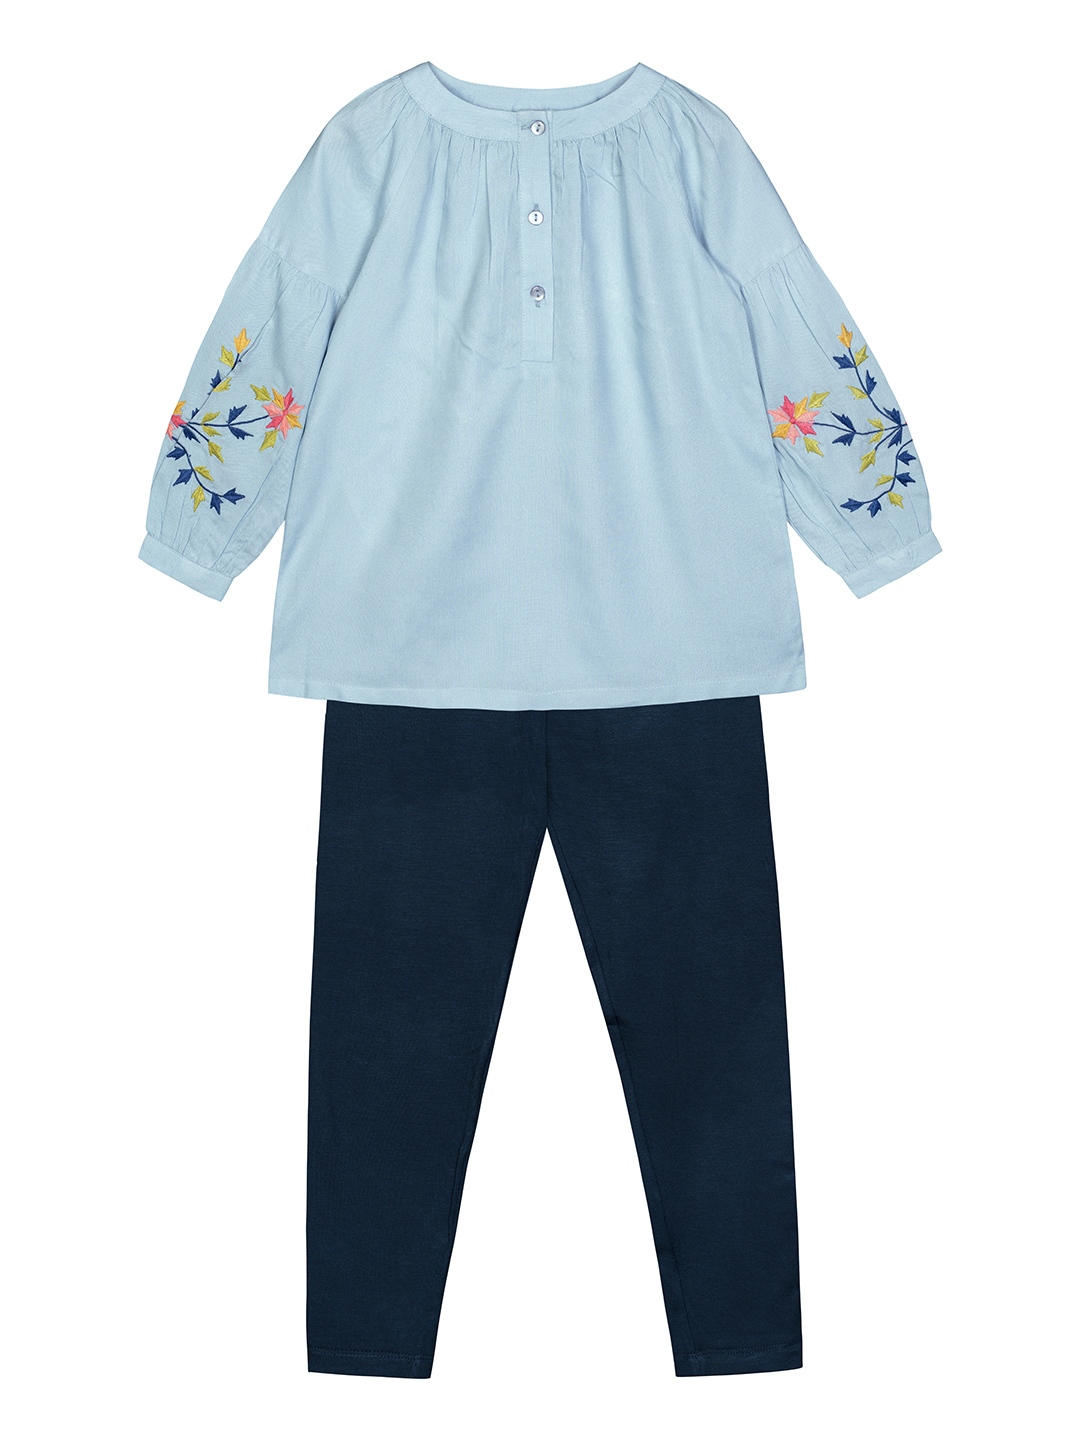 Budding Bees | Budding Bees Girls Sky Blue Top with Legging Top